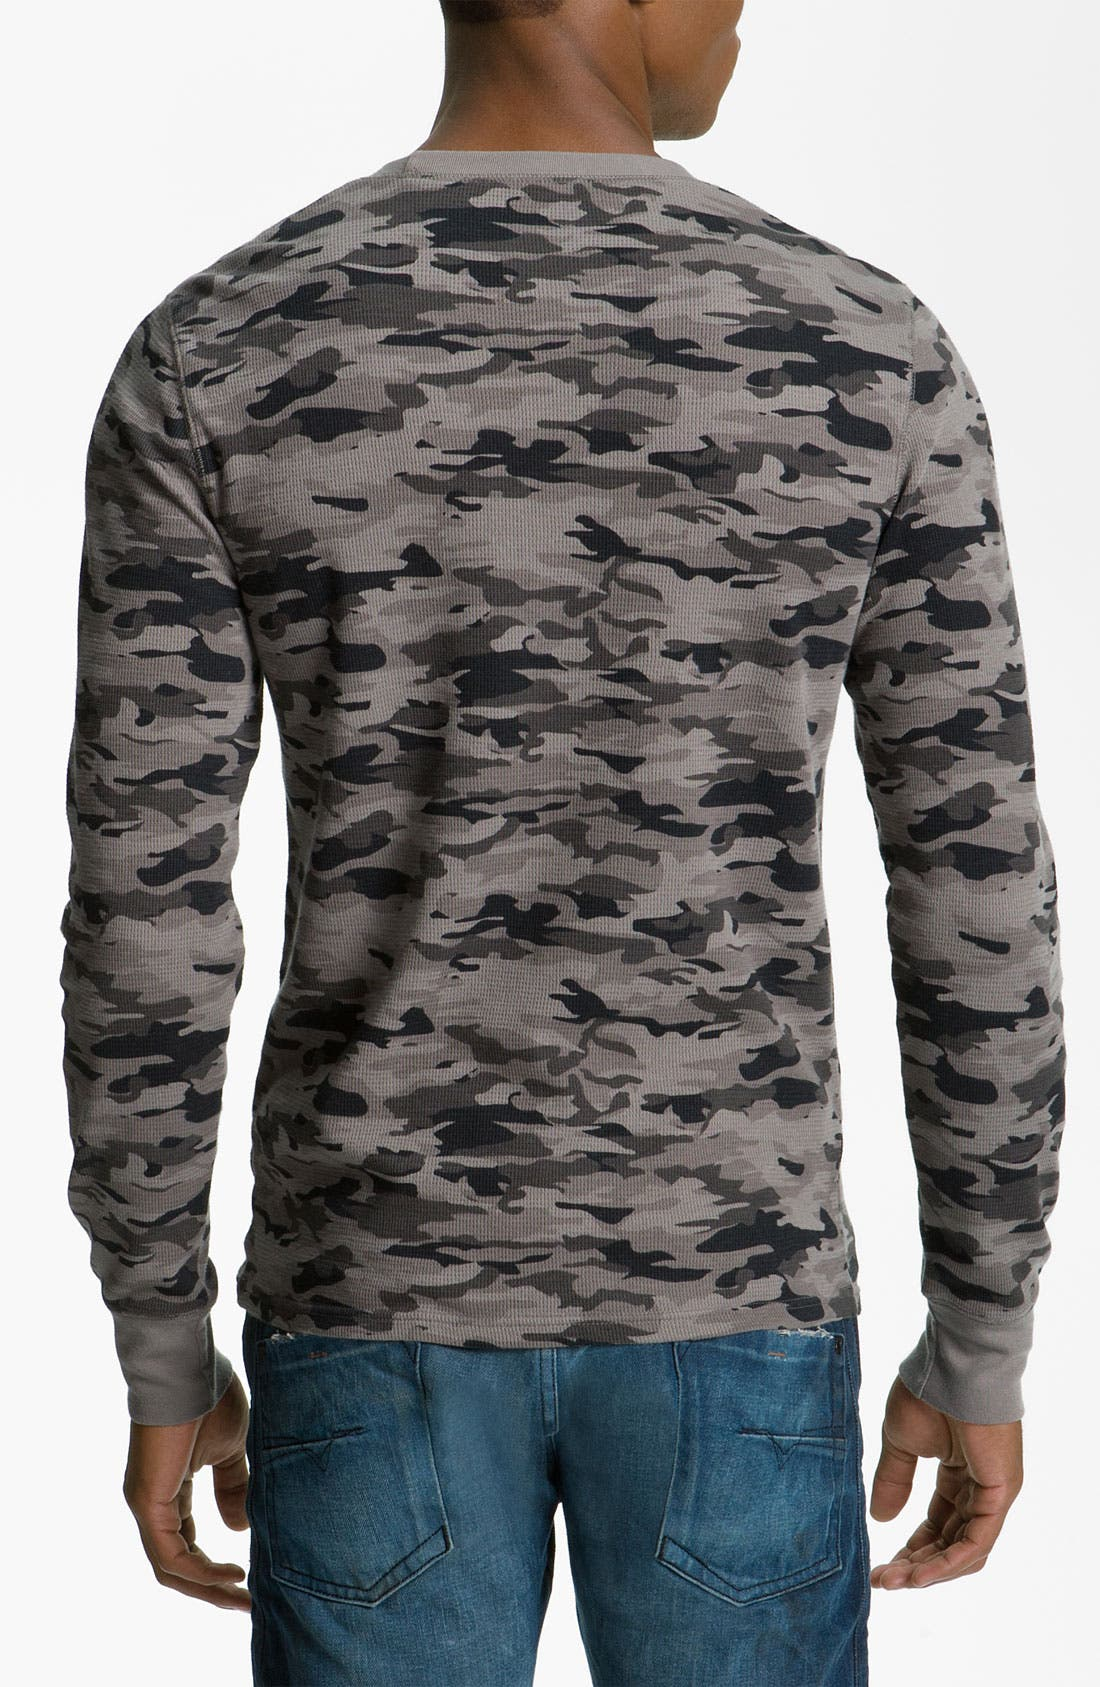 The Rail by Public Opinion Camo Thermal Shirt,                             Alternate thumbnail 2, color,                             001